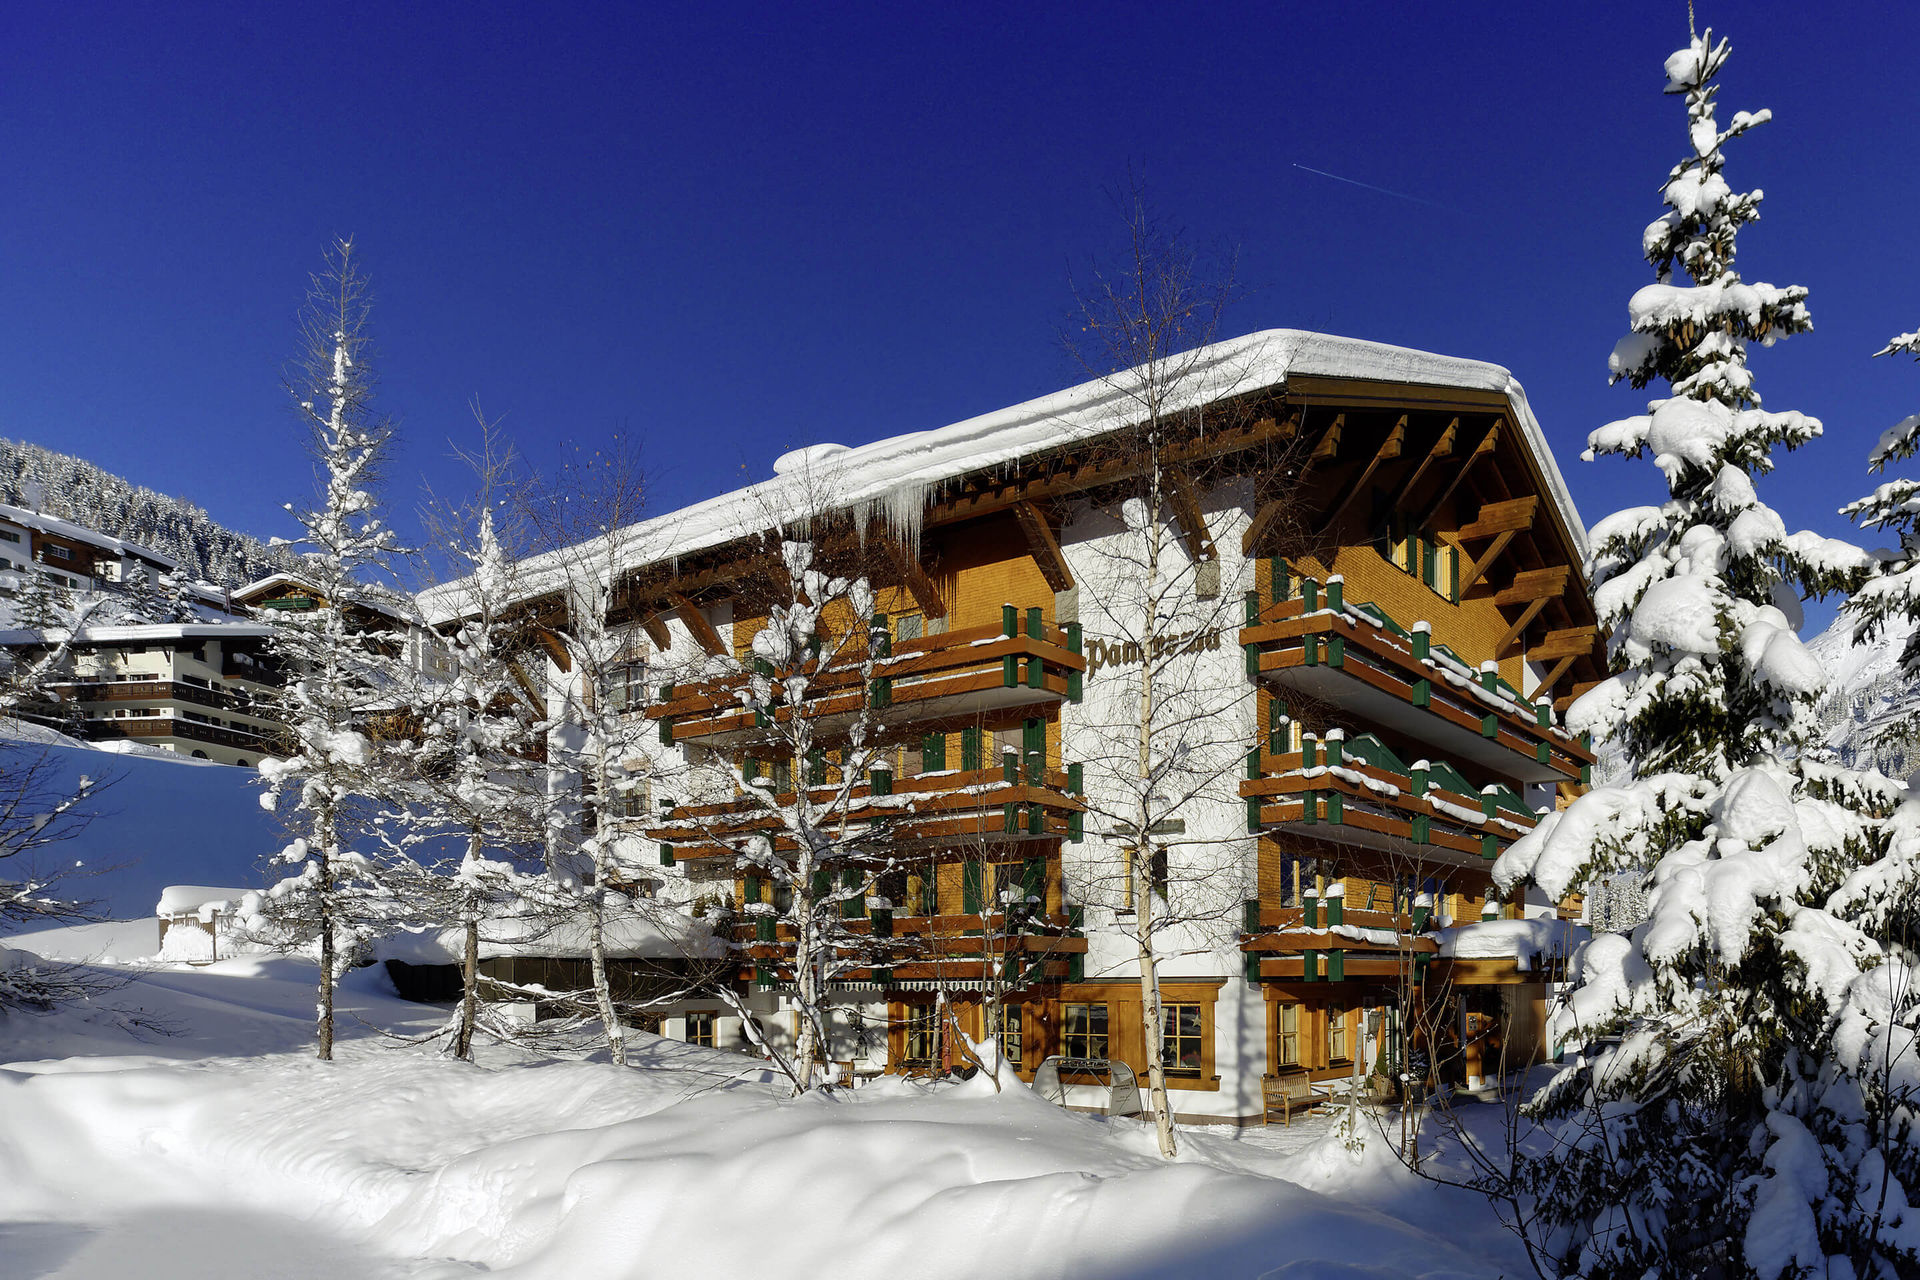 Hotel panorama in lech catalogue and price list for Hotel panorama